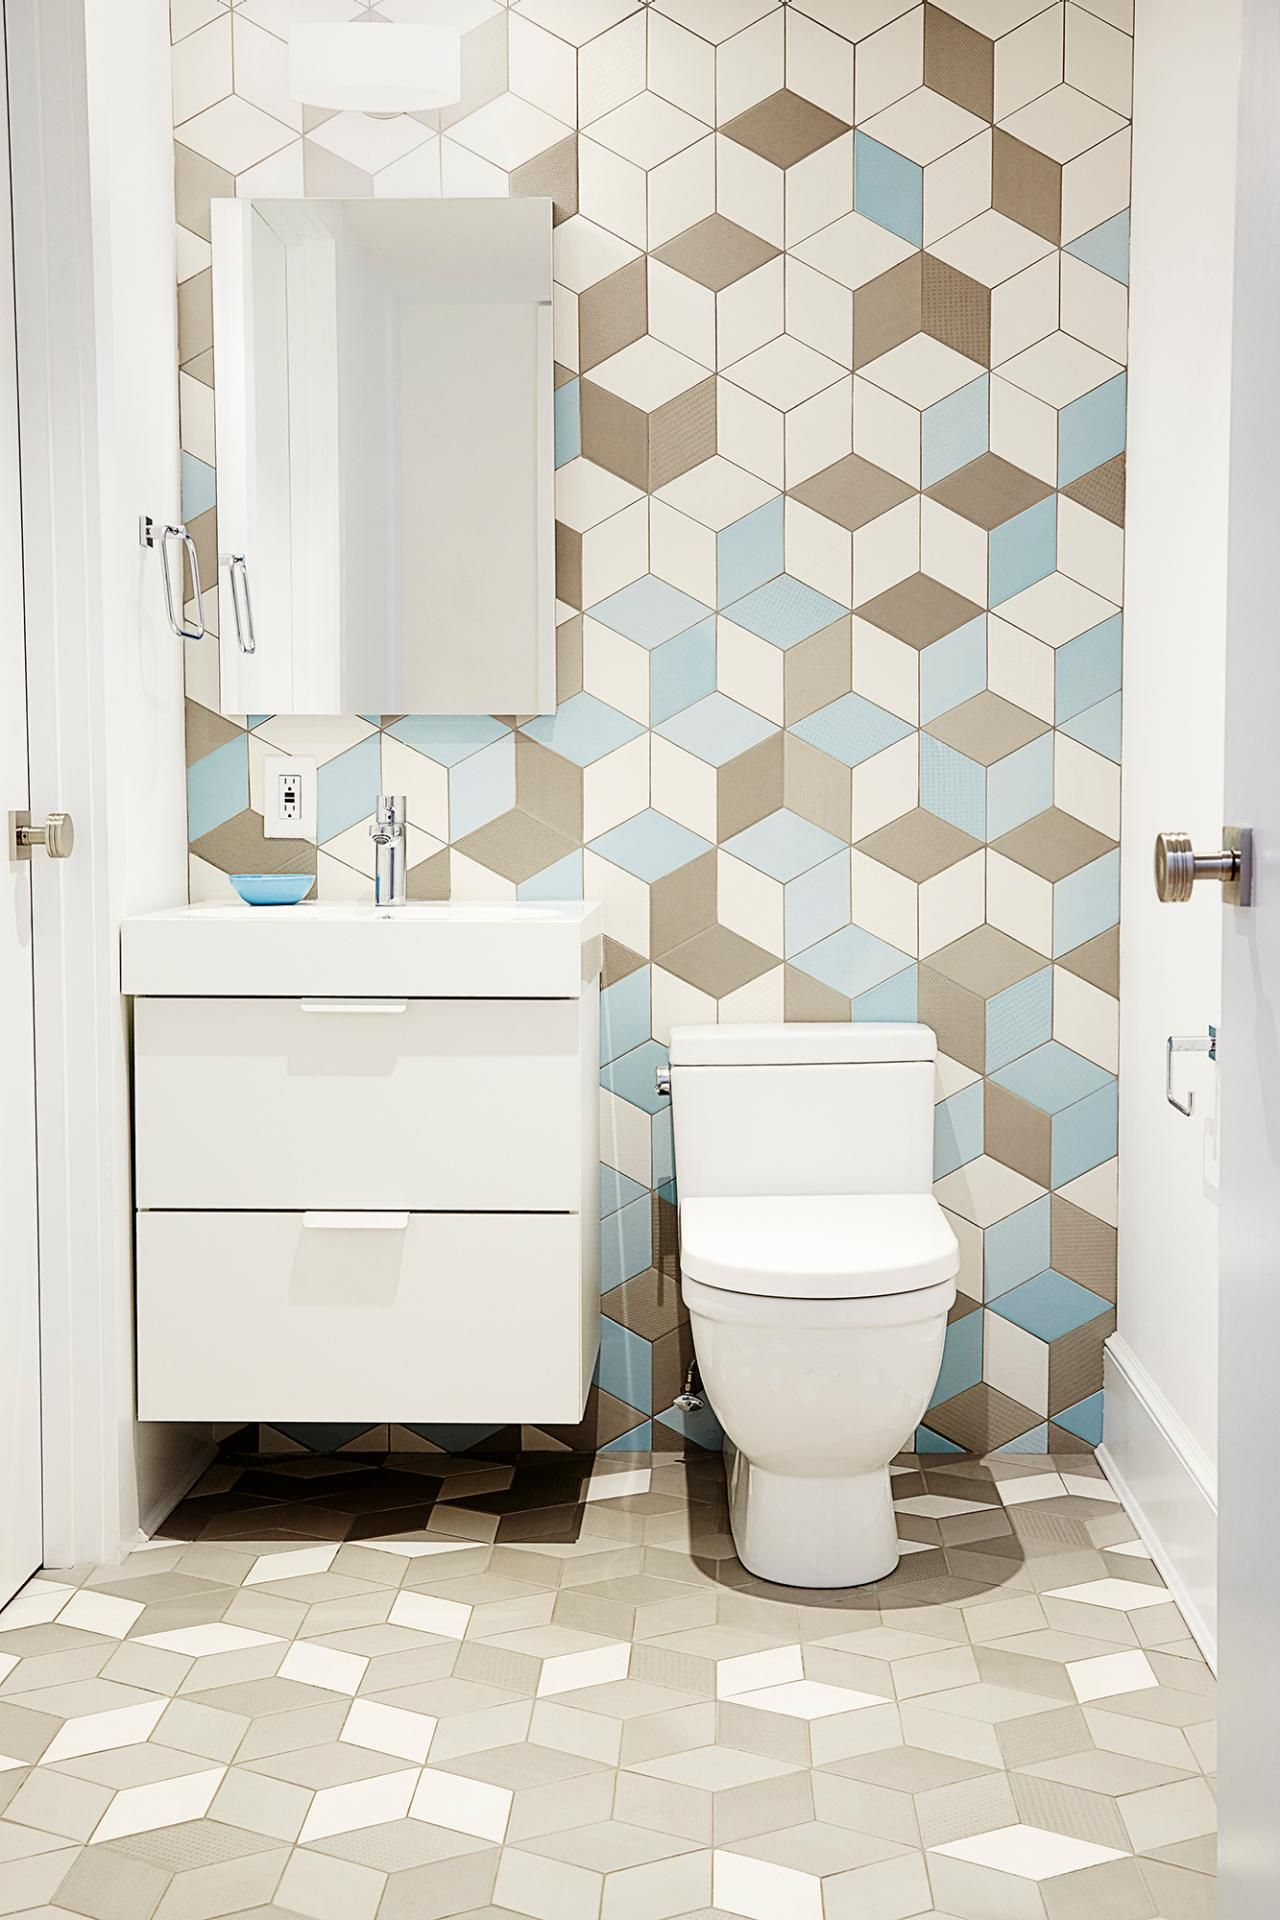 10 Design Trends To Get Obsessed With In 2016 According To Pinterest Geometric Tiles Bathroom Modern Bathroom Tile Bathroom Tile Designs